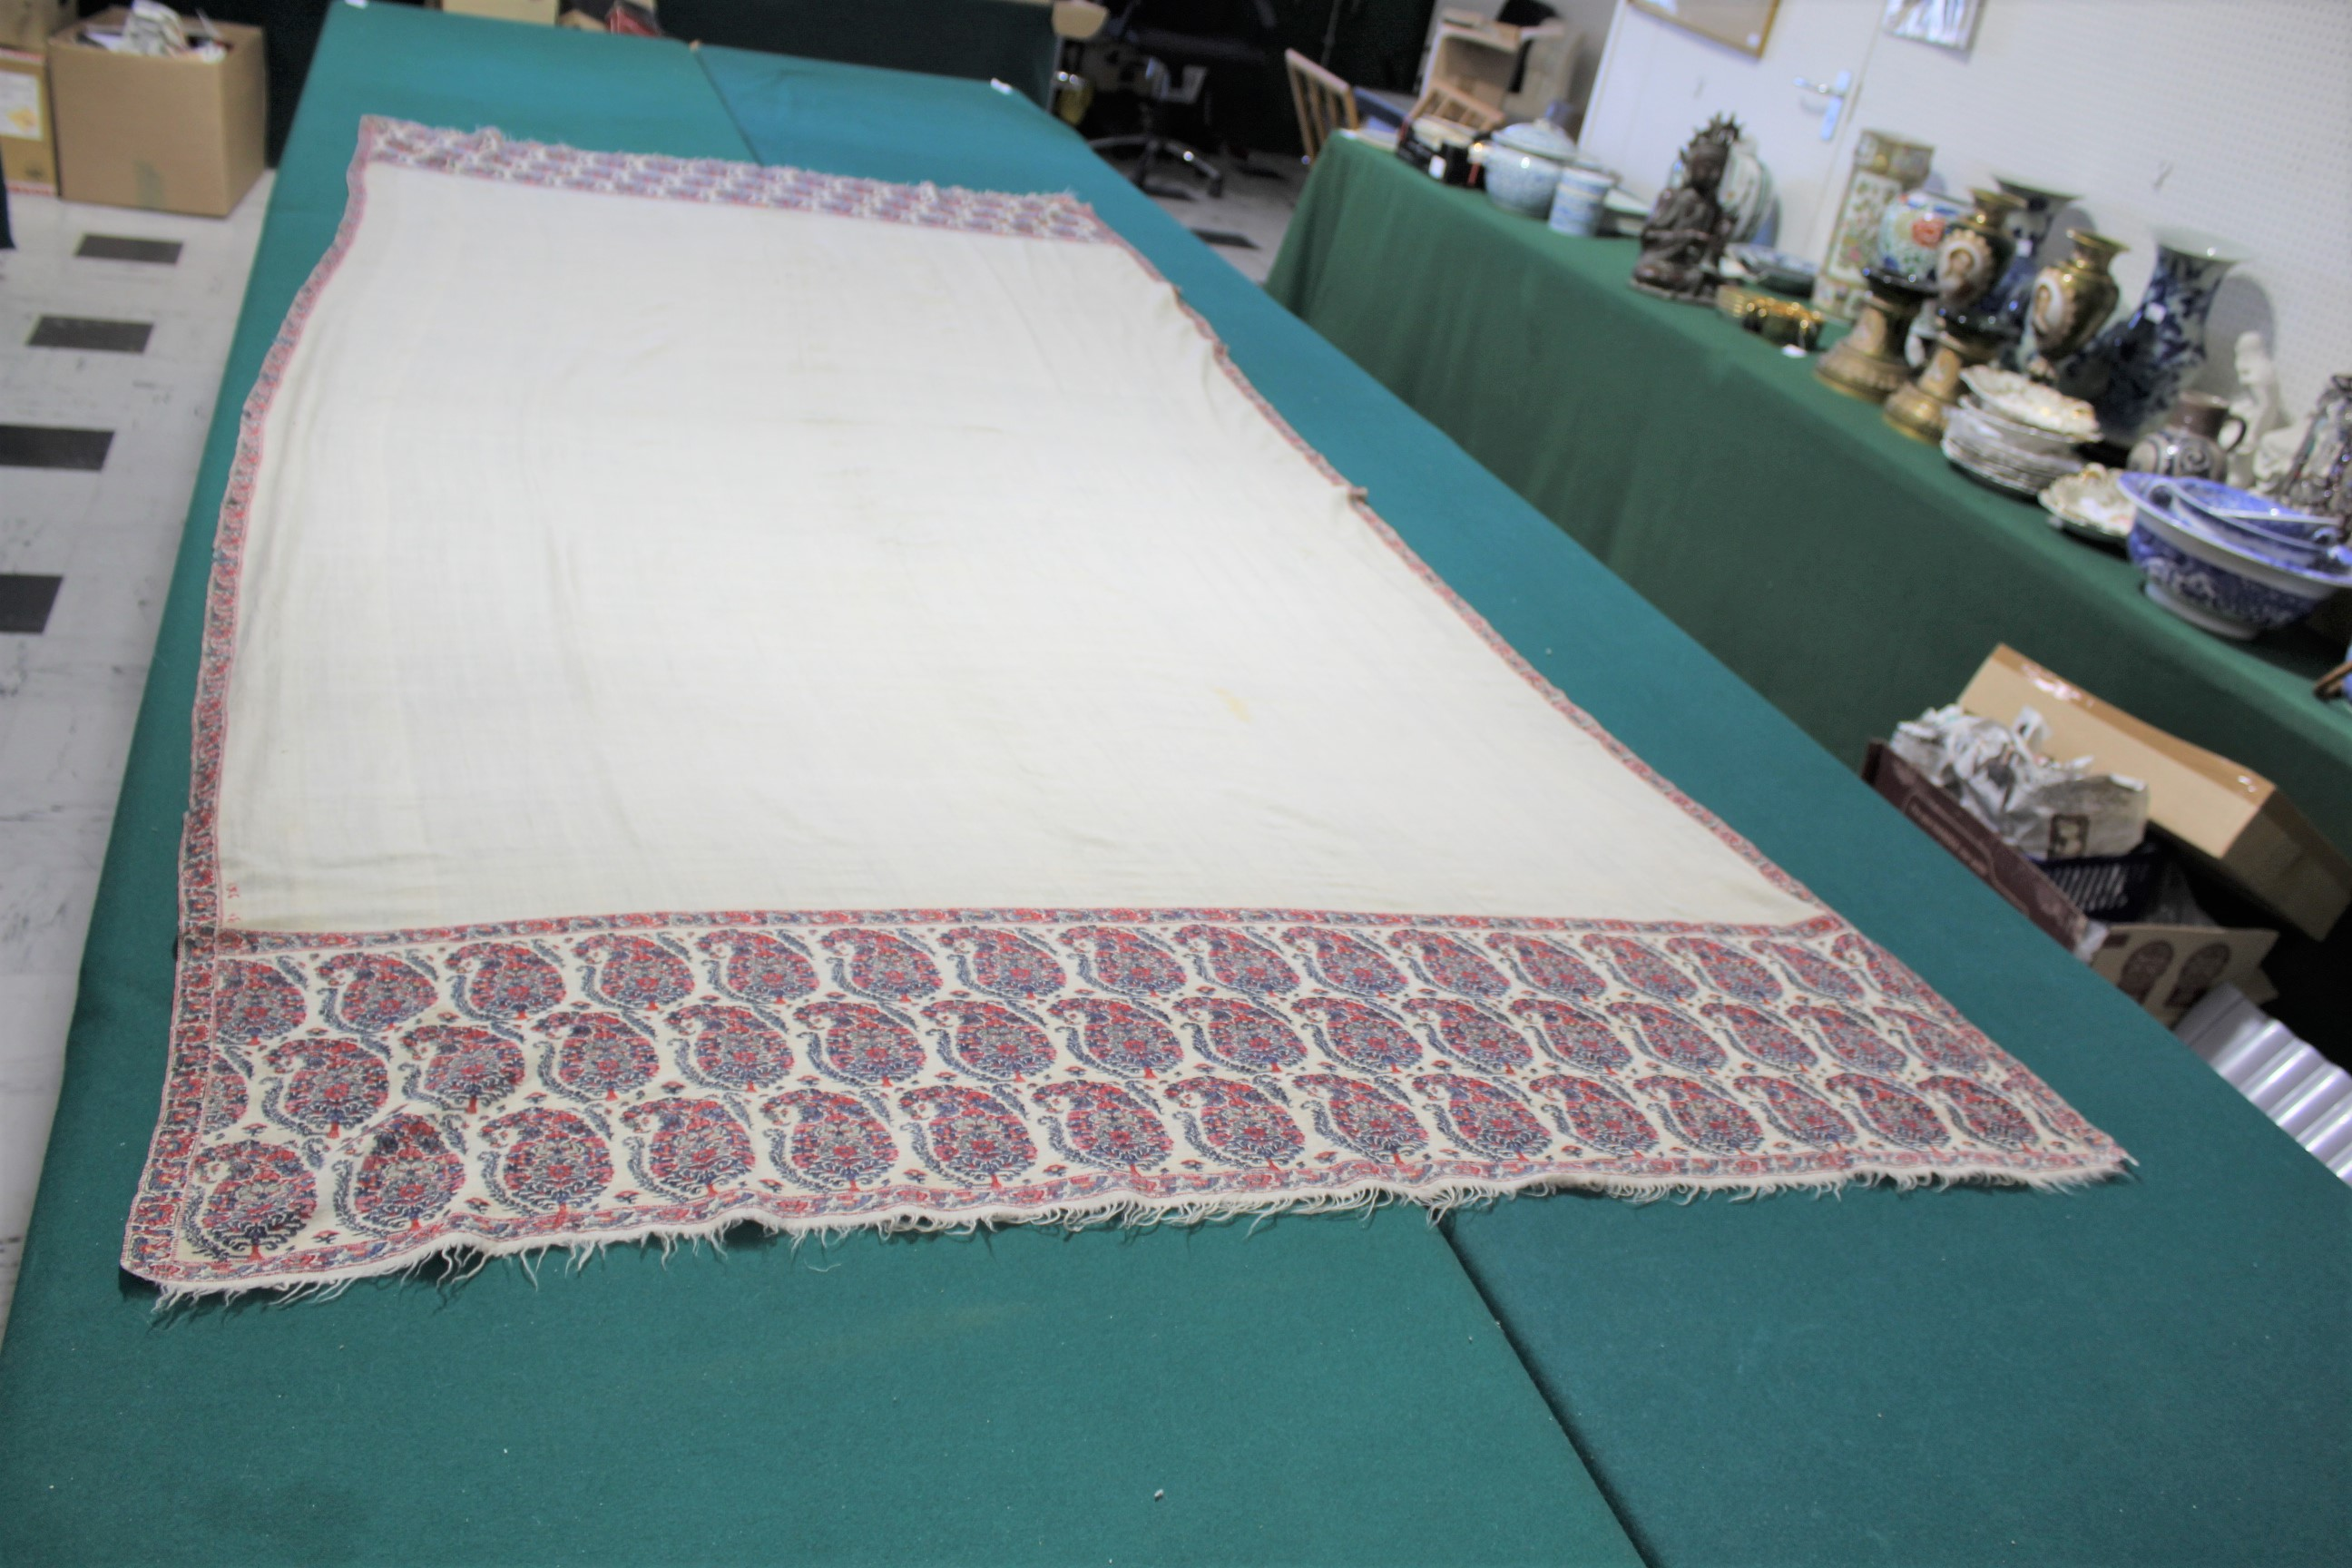 Lot 1858 - 19THC PAISLEY SHAWL a mid 19thc paisley wool cashmere shawl (264cms by 126cms), and also with a fine